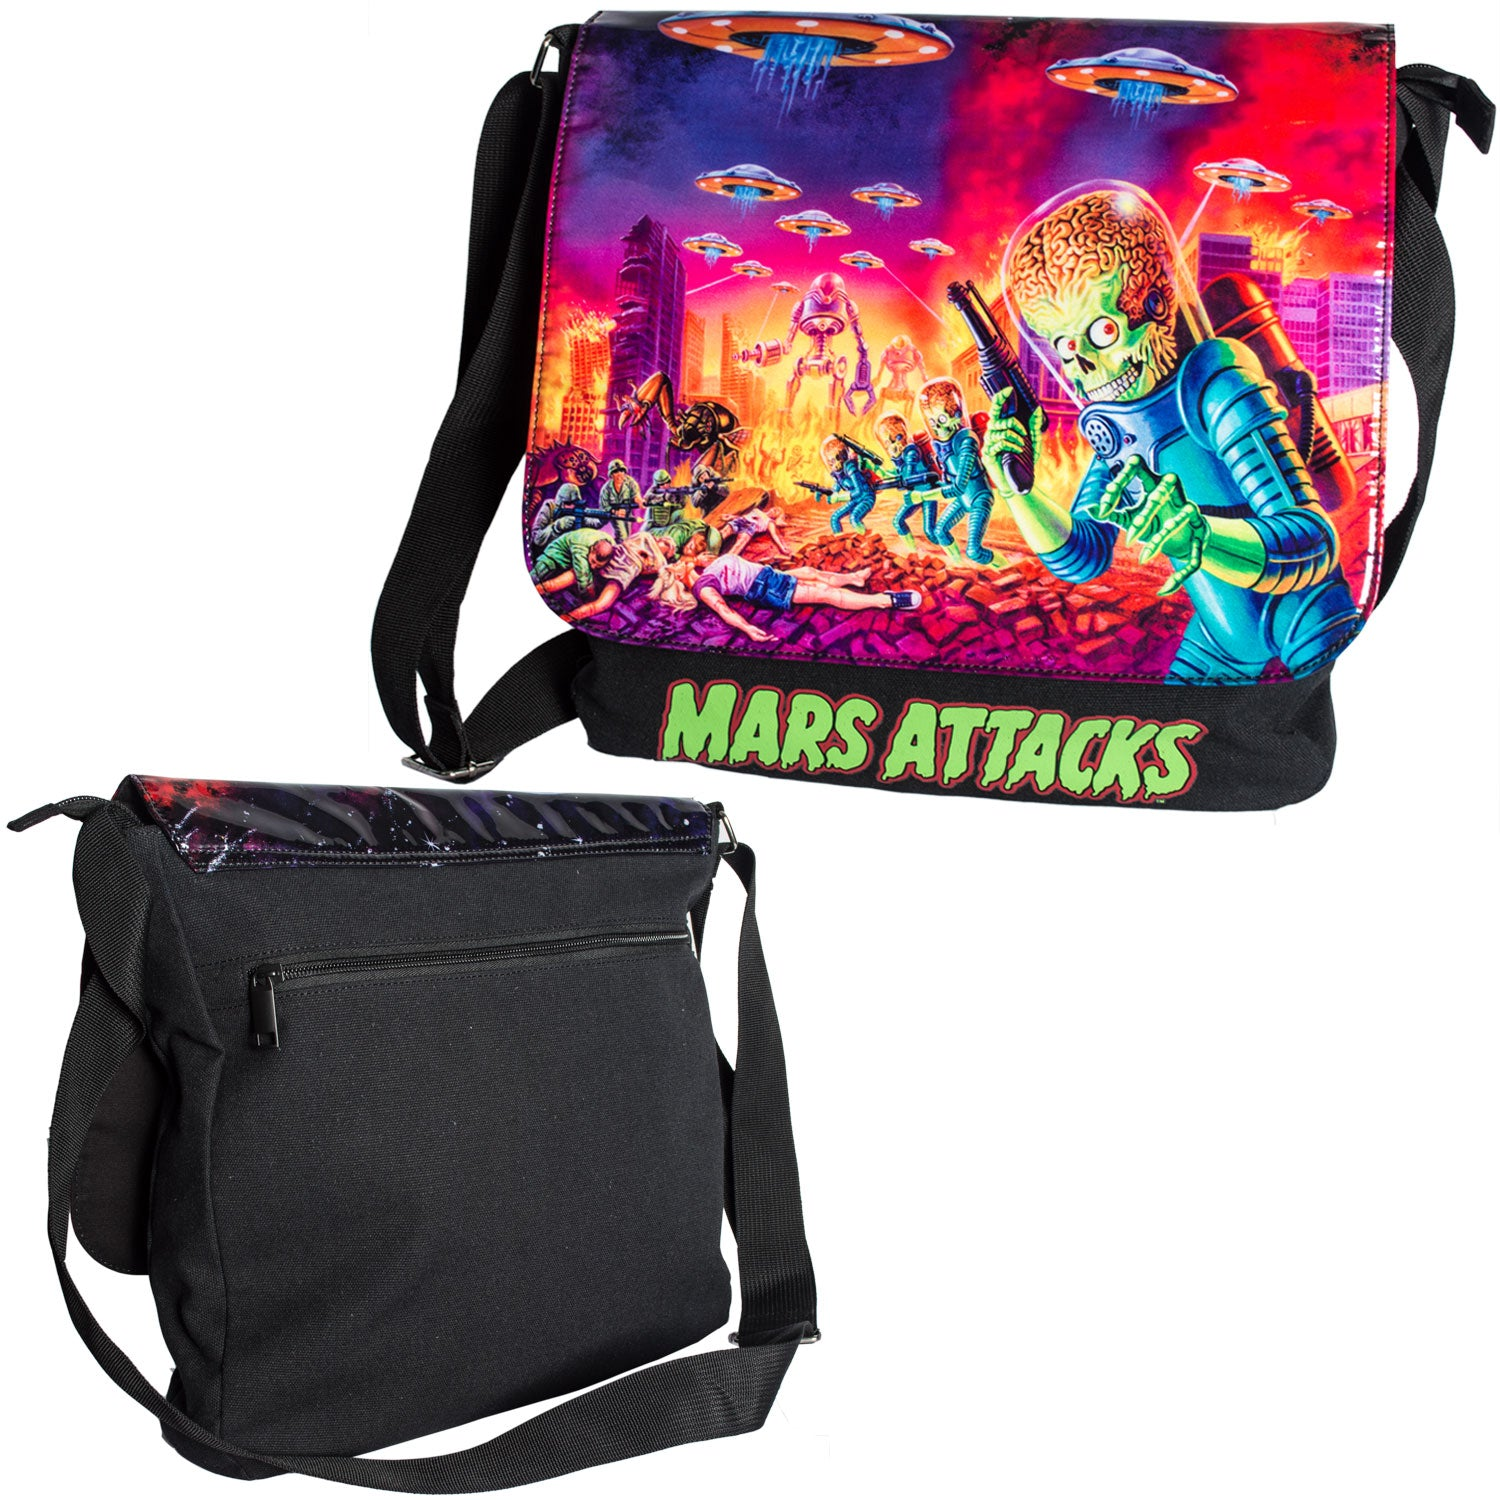 Mars Attacks Mini Messenger Bag